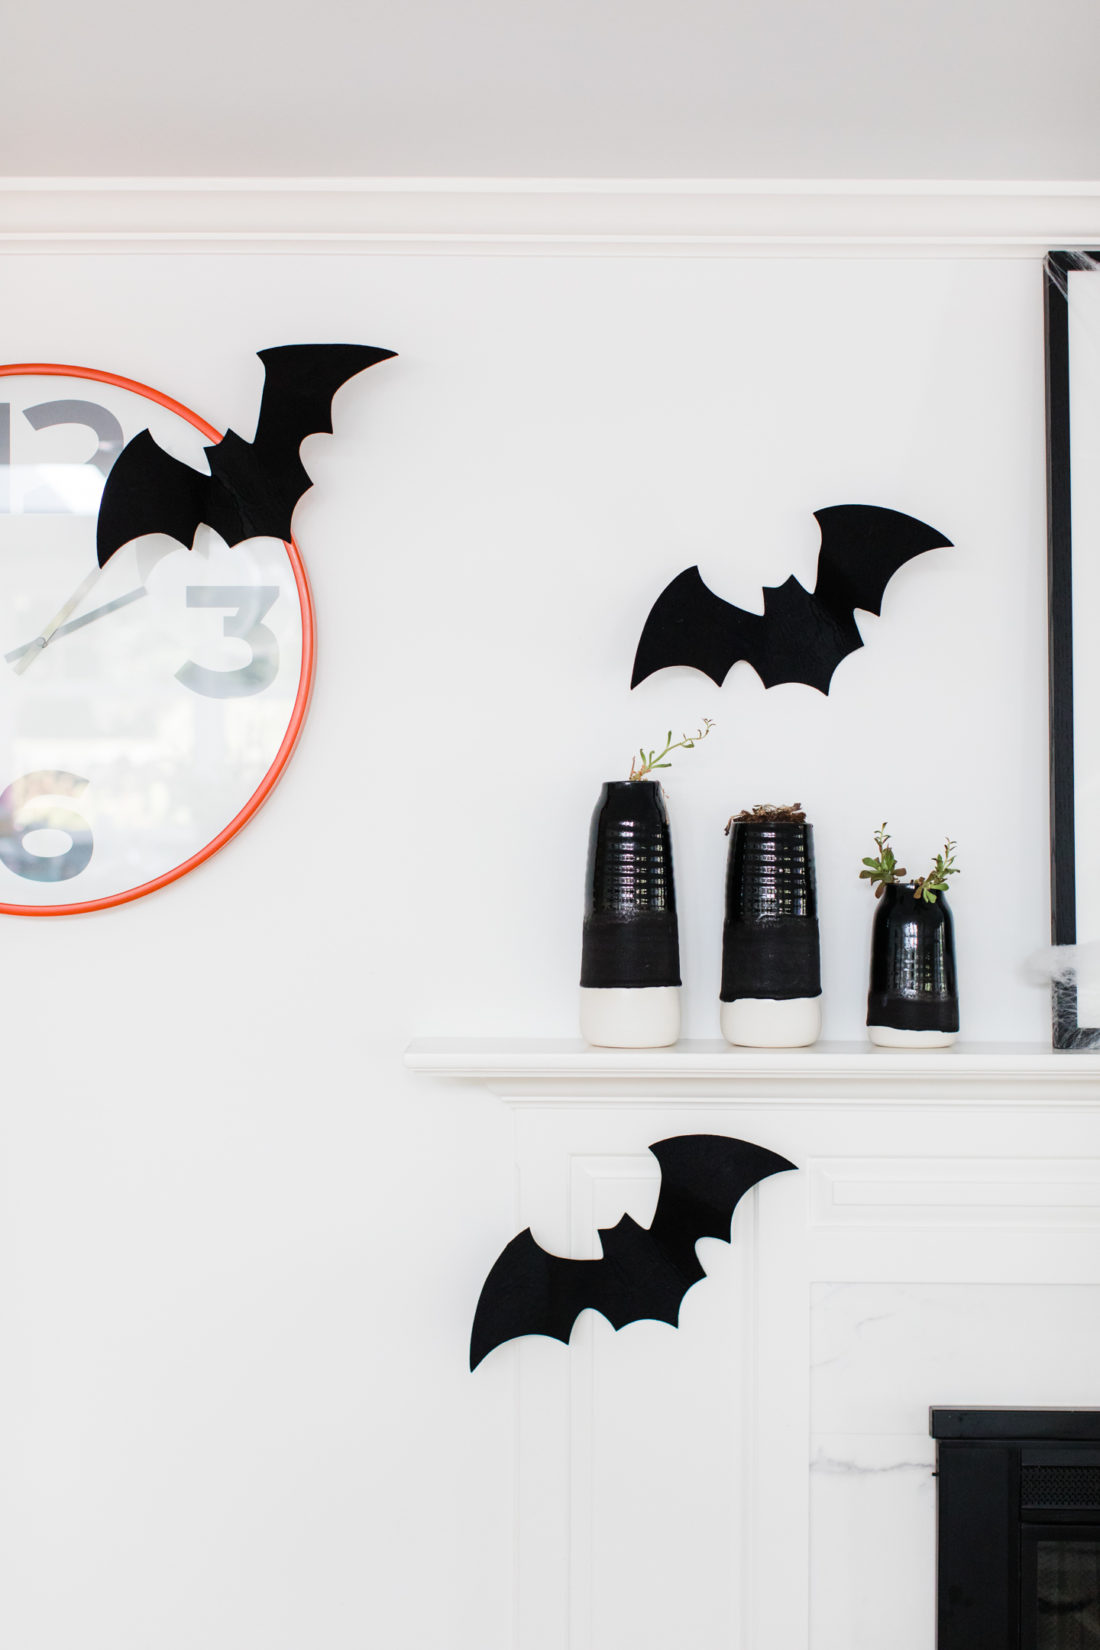 Felt bats fly around an orange clock in Eva Amurri Martino's Halloween decorated kitchen